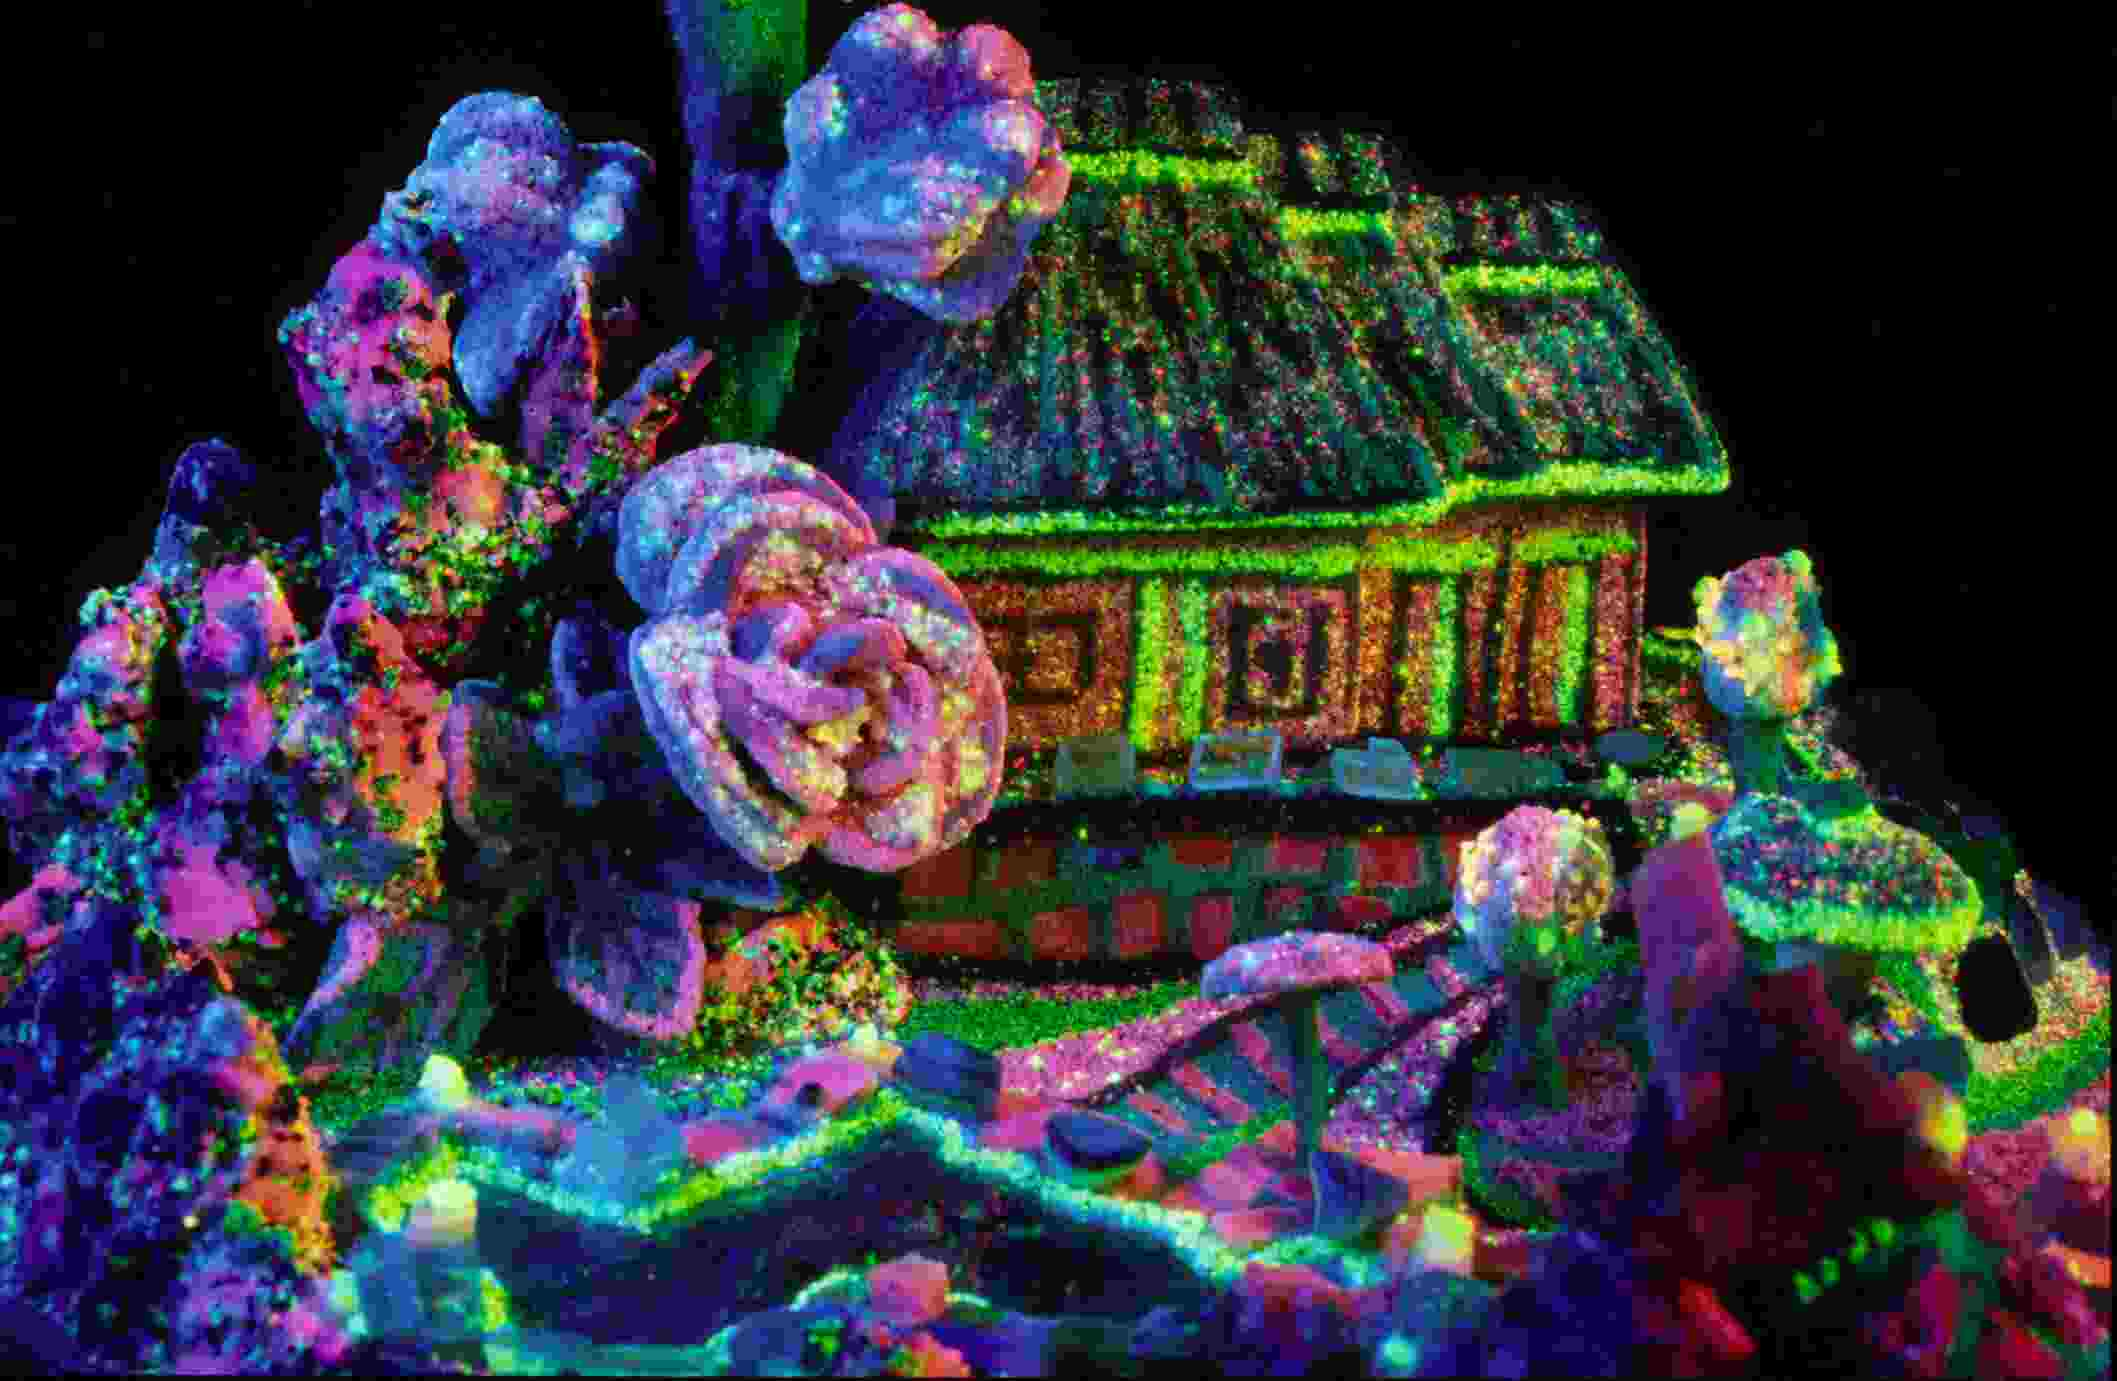 Fluorescence Of Colored Glass Beads